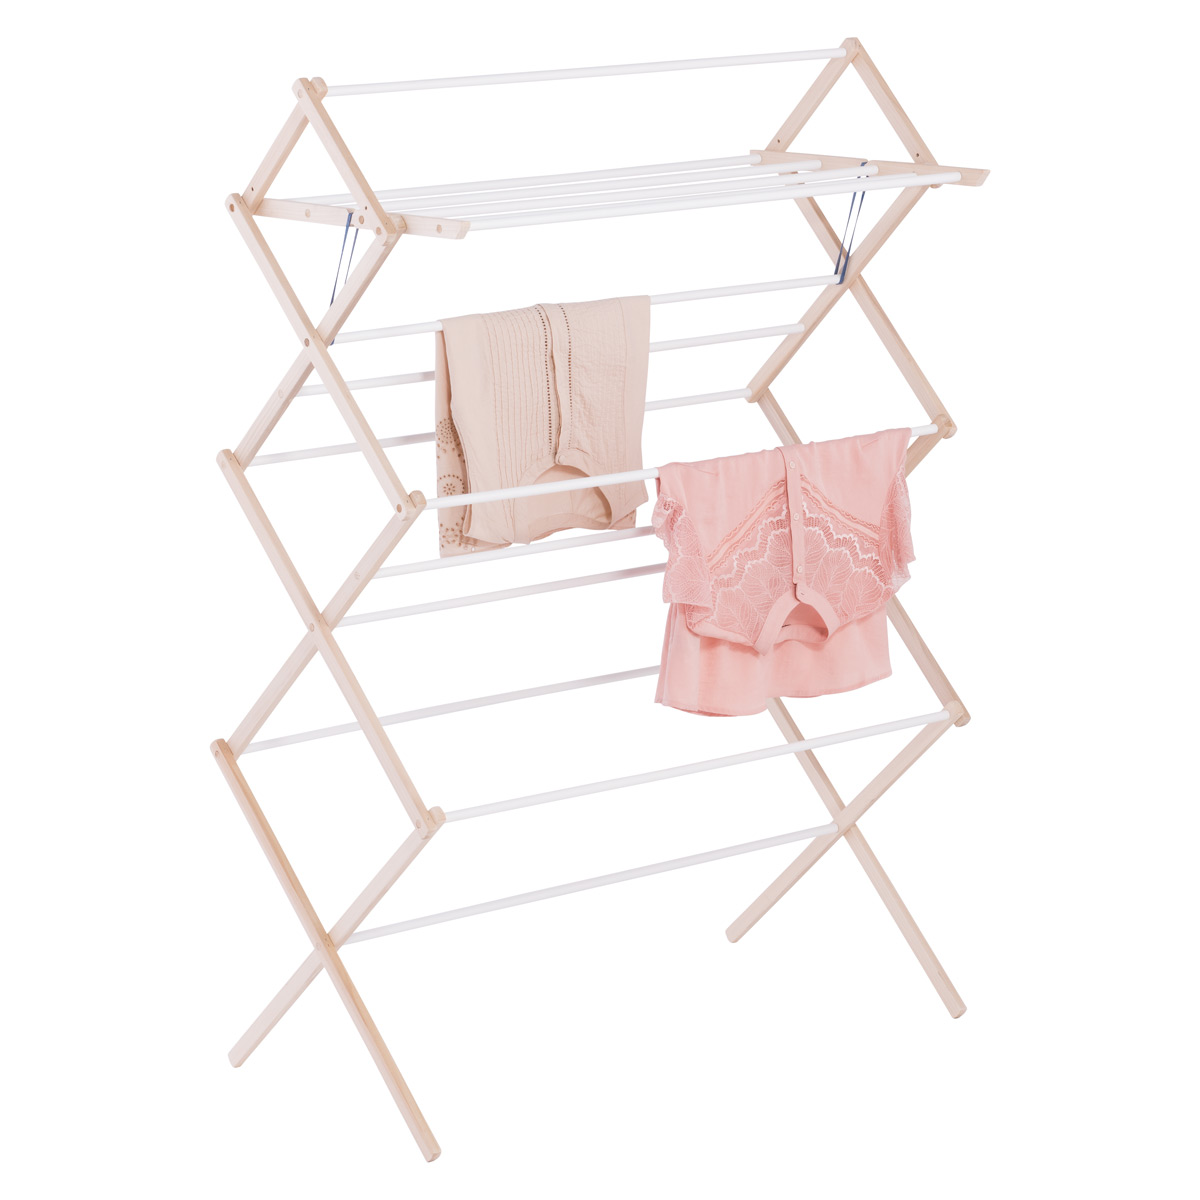 15 Dowel Wooden Clothes Drying Rack The Container Store